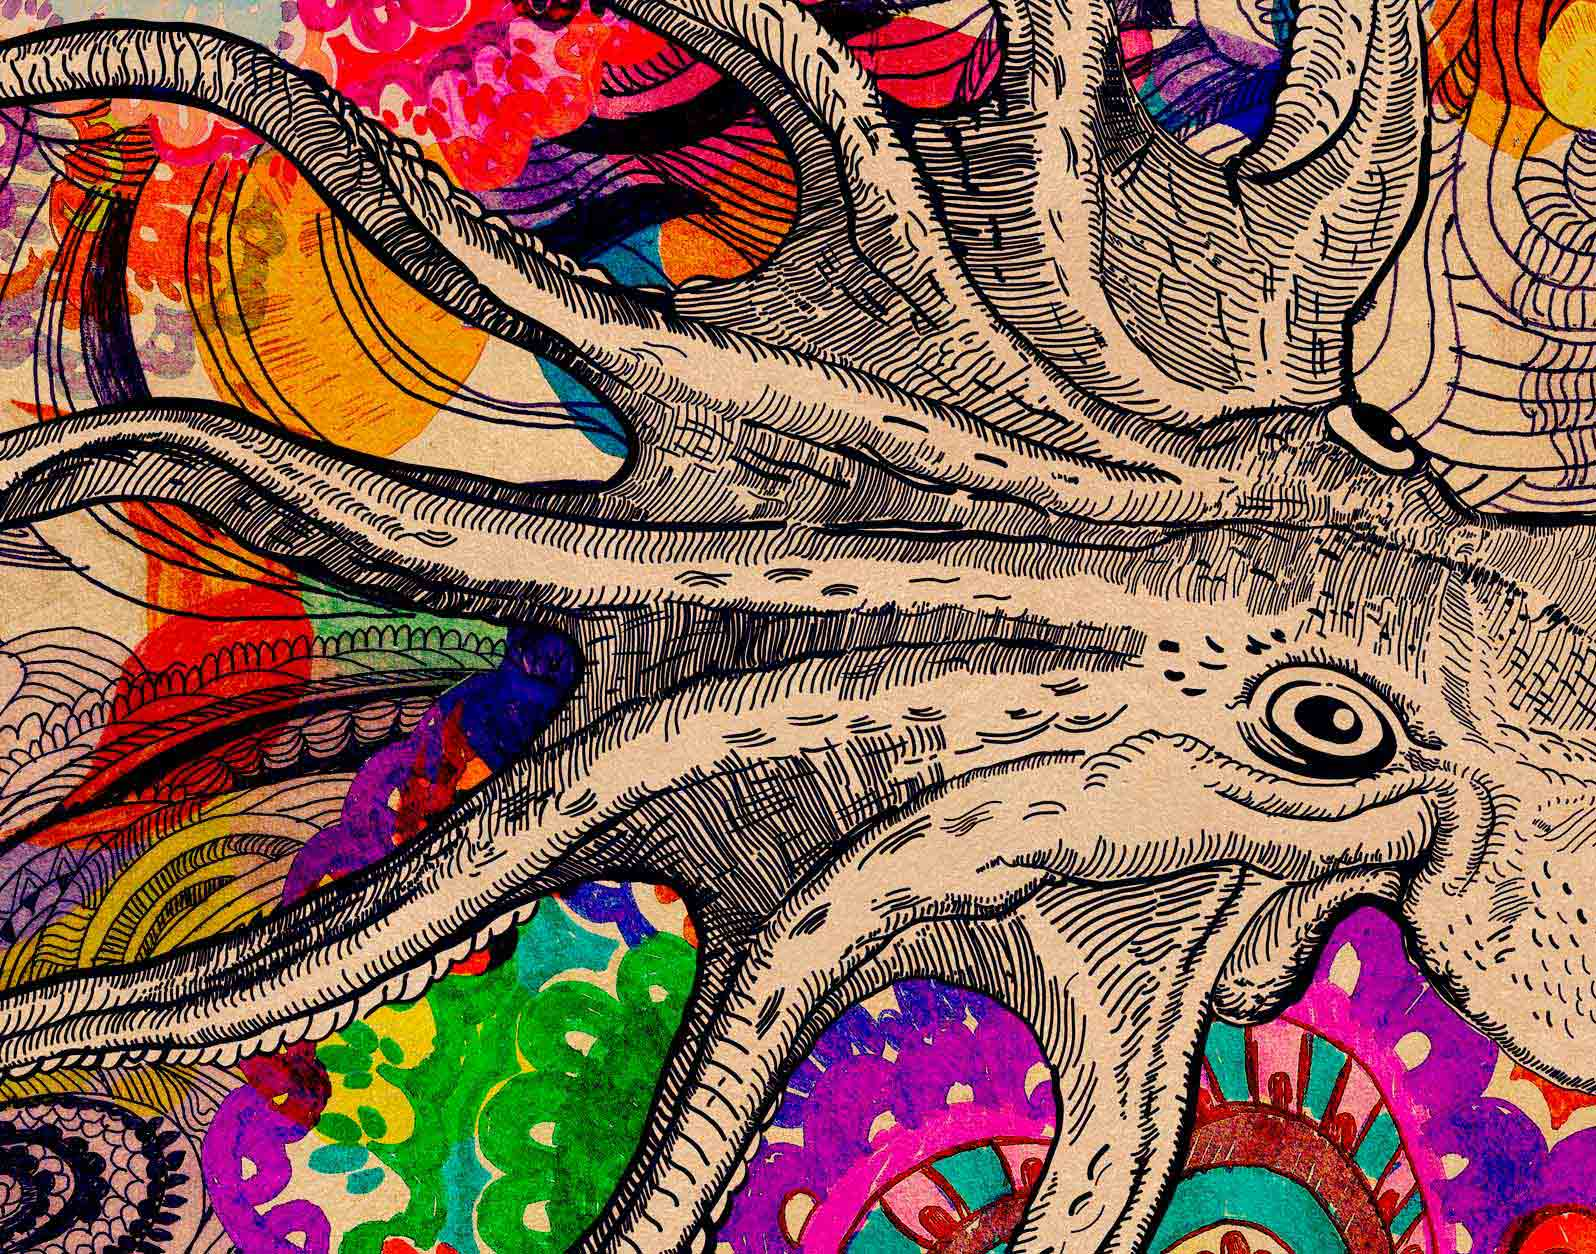 Anca Stefanescu | Octopus's Garden Digital Art, Print On Canvas